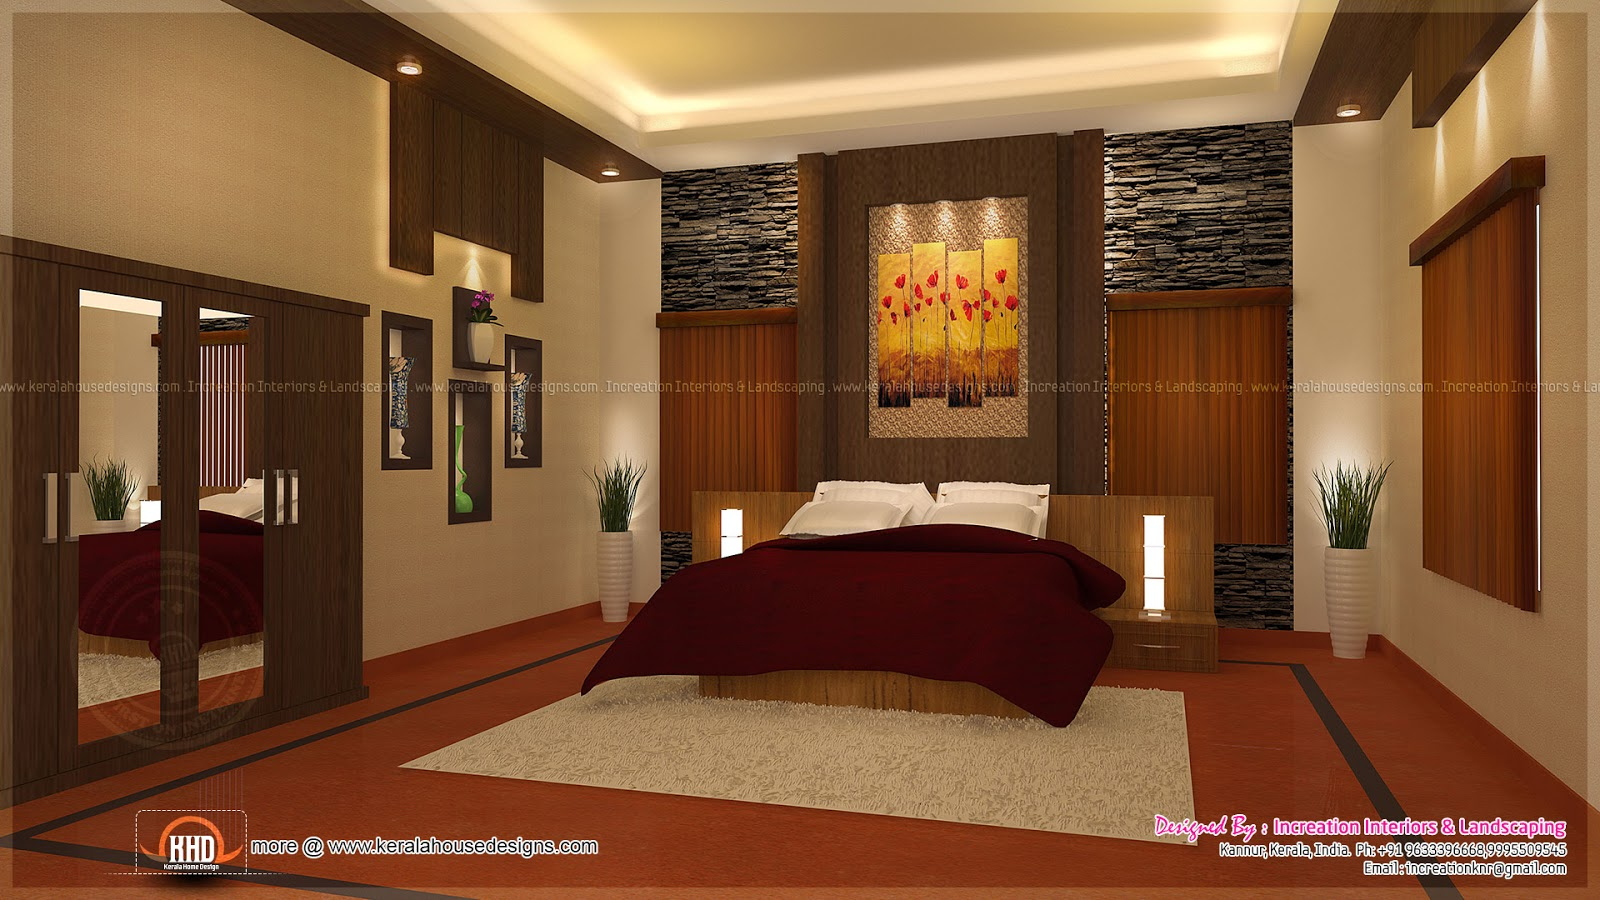 House interior ideas in 3d rendering kerala home design and floor plans - Home design inside ...